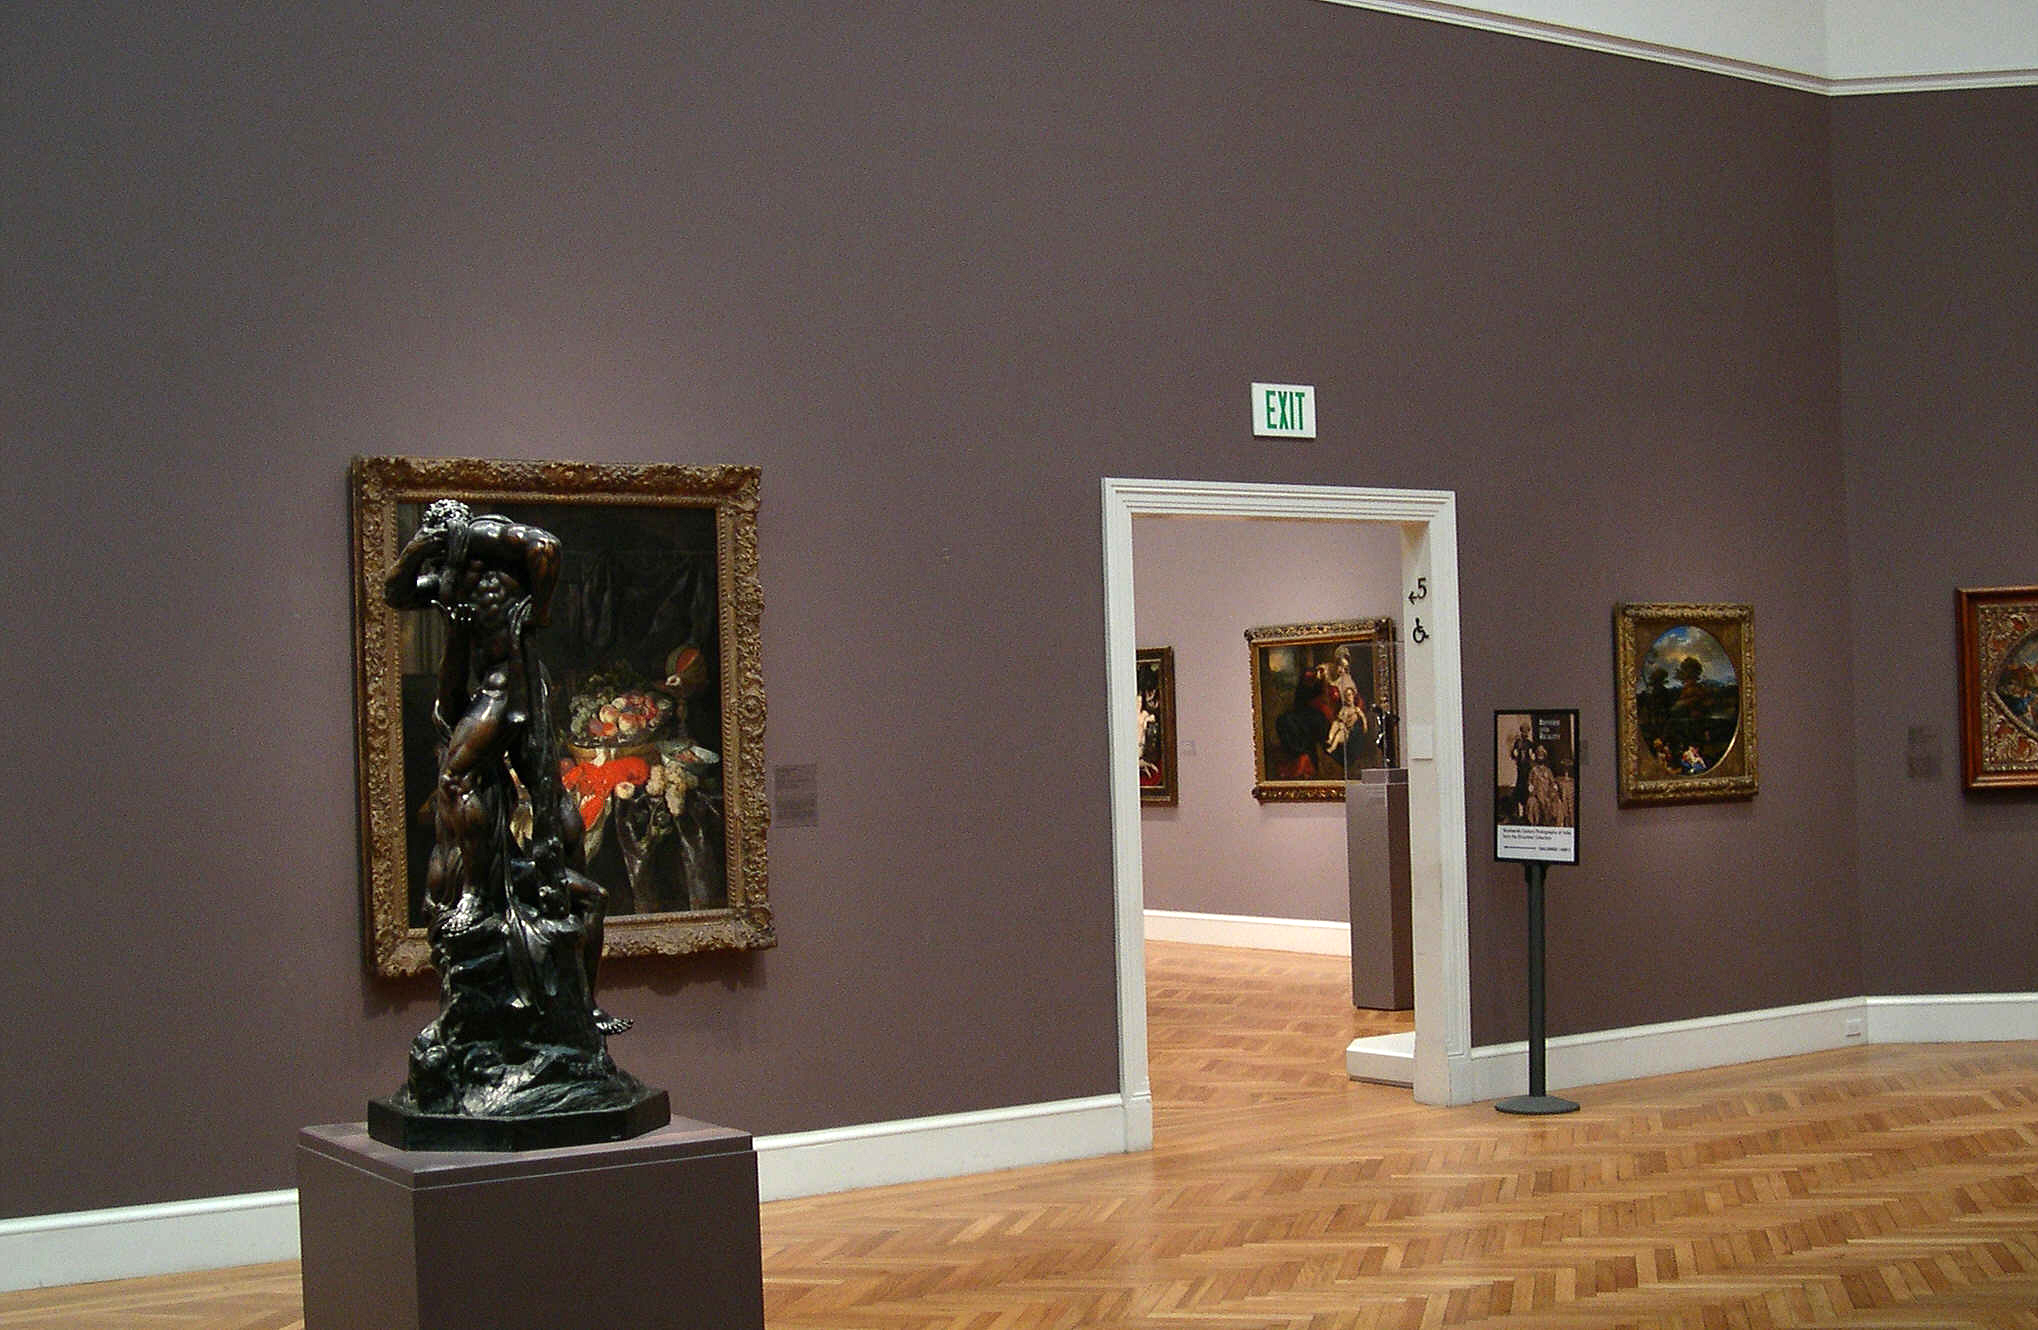 Vertigo - Art Gallery and The Portrait Of Carlotta